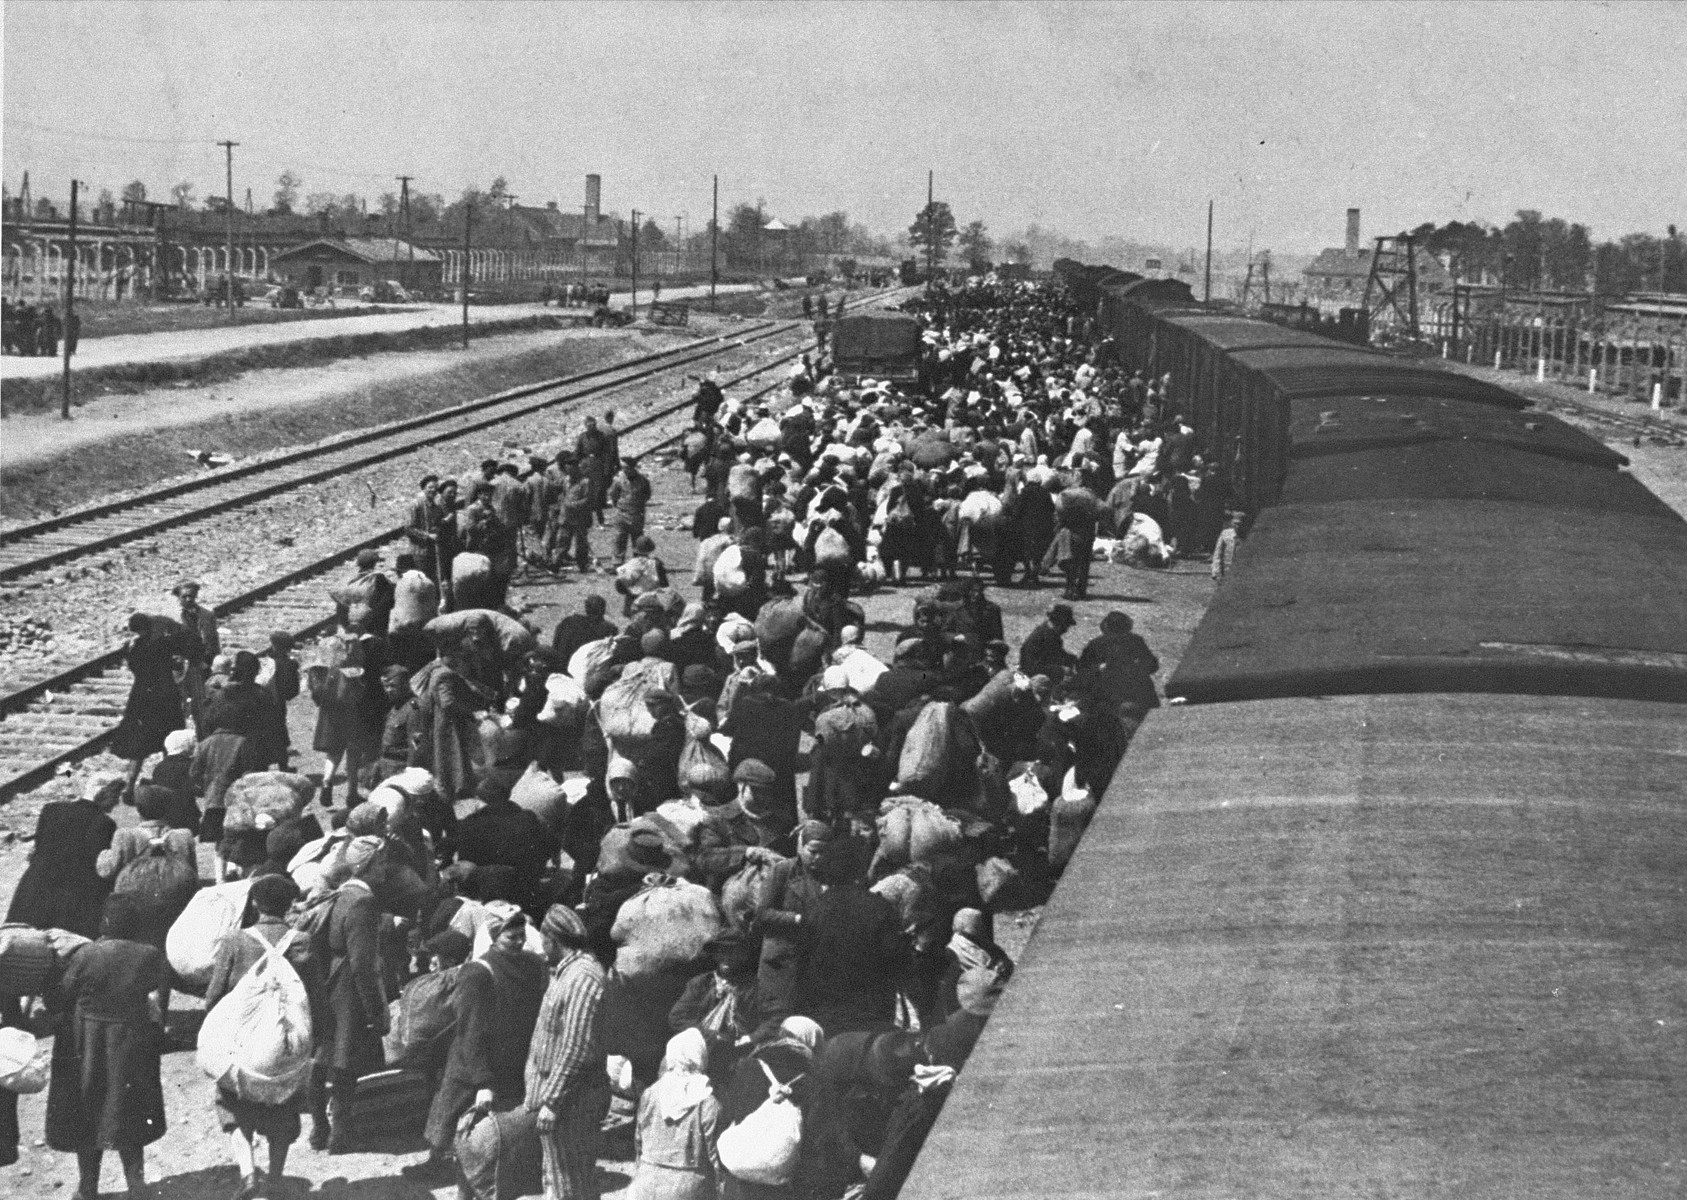 A transport of Jews from Subcarpathian Rus is taken off the trains and assembled on the ramp at Auschwitz-Birkenau.  Pictured in the front is Heinrich Preiss, a member of the Kanada kommando.